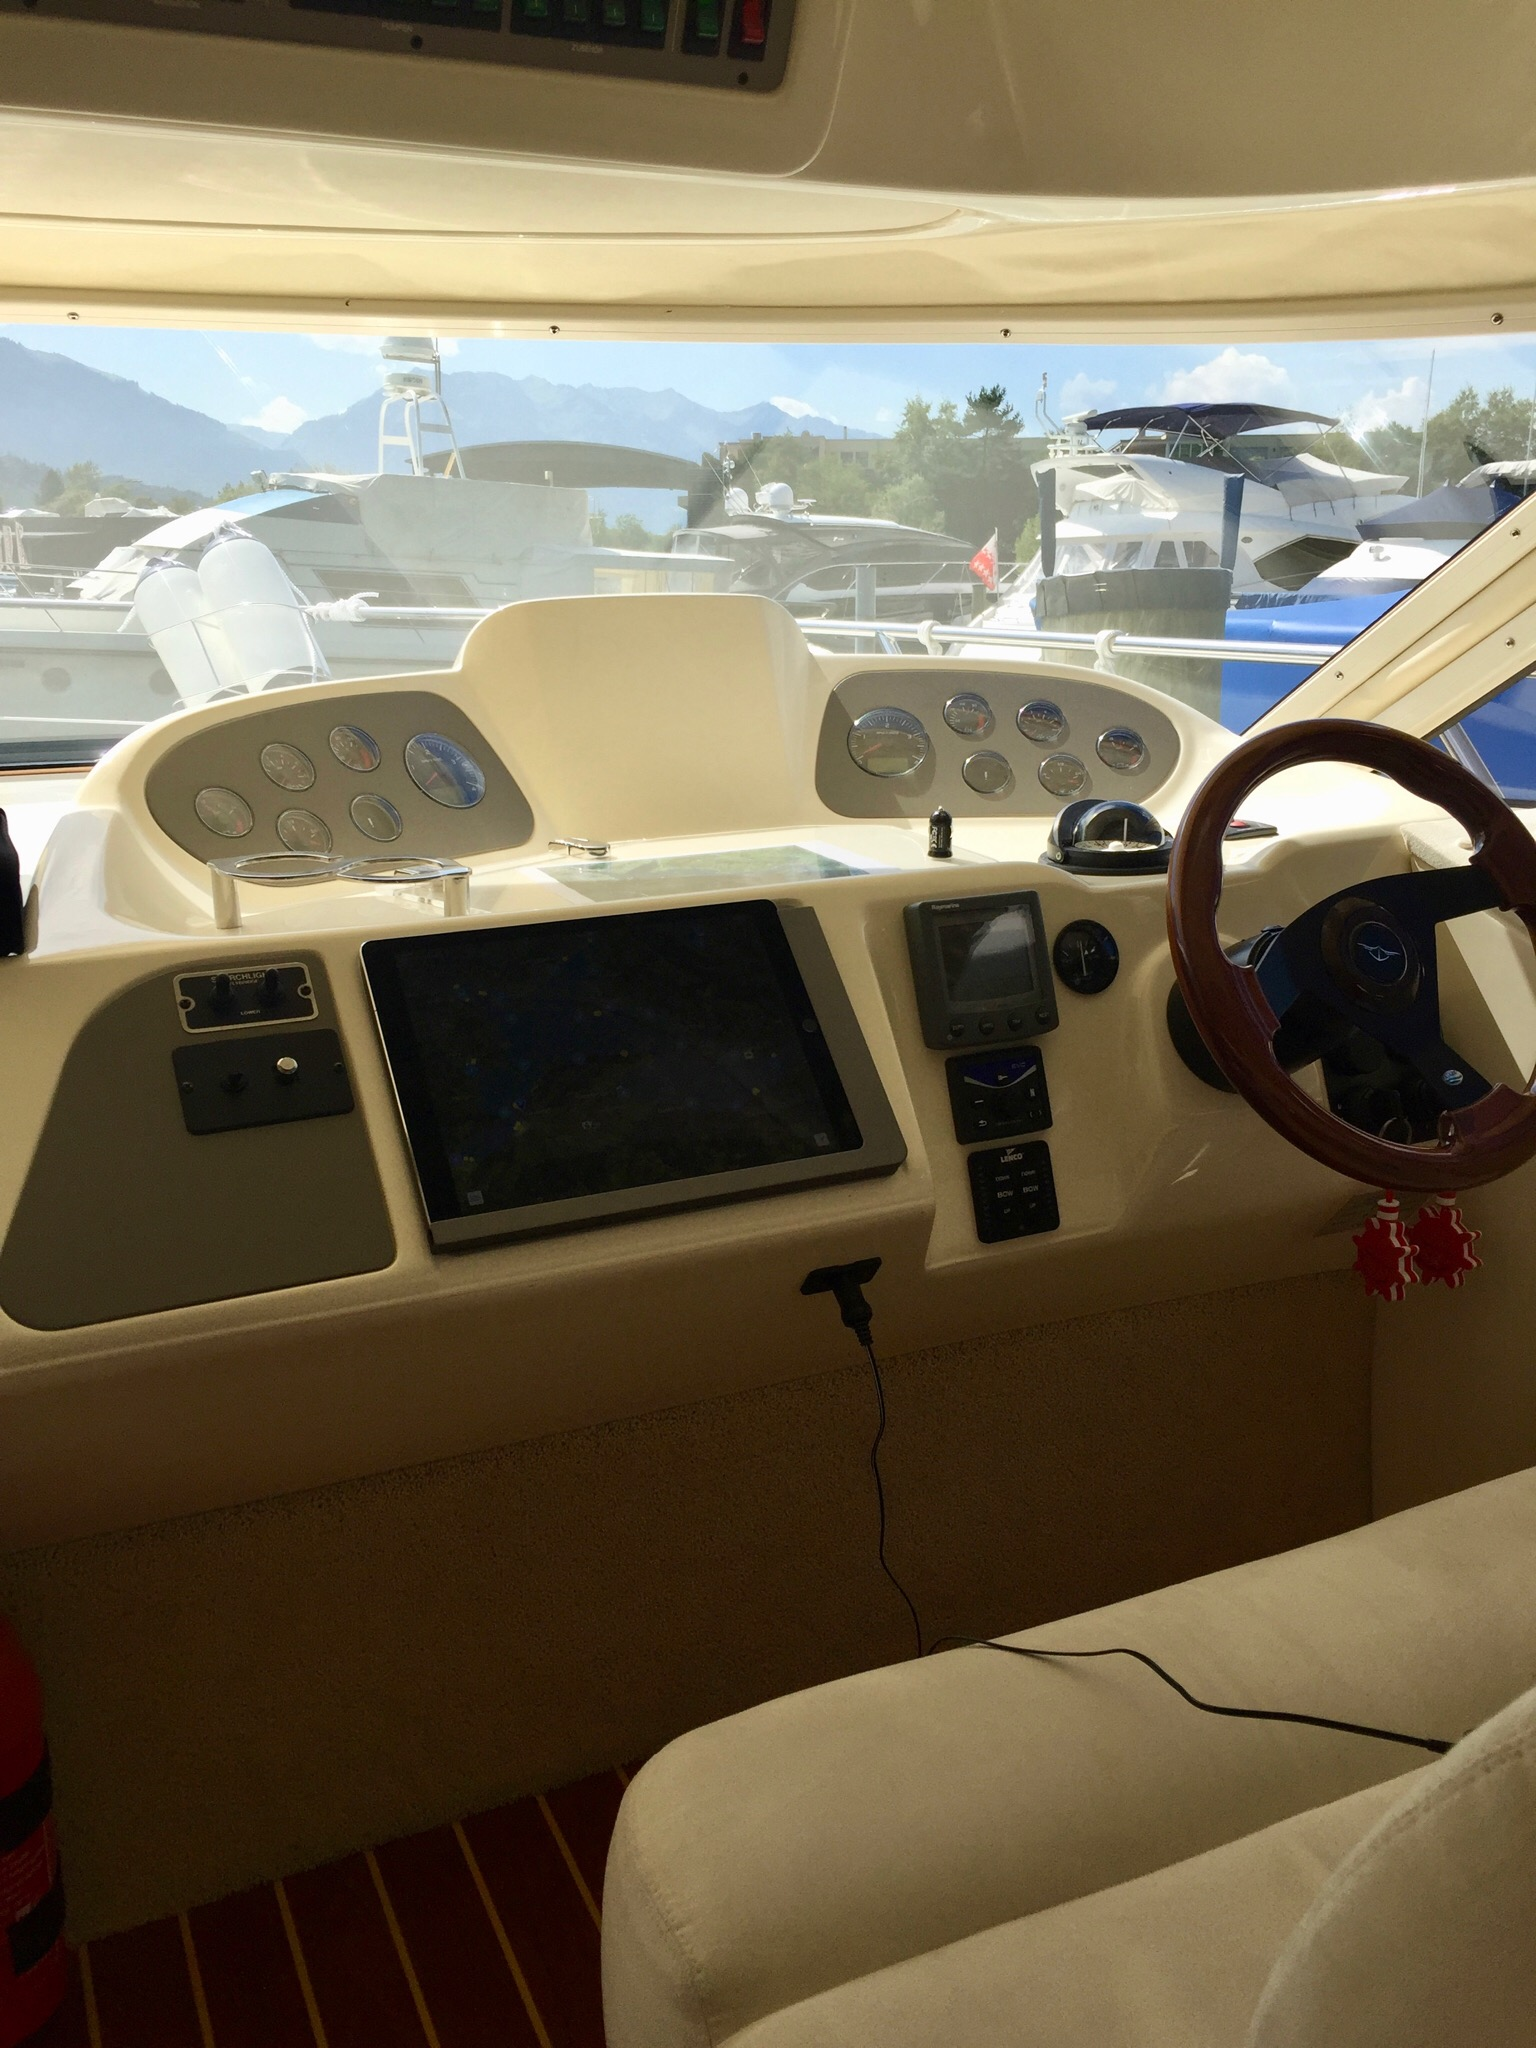 The Free Running Yacht Technology